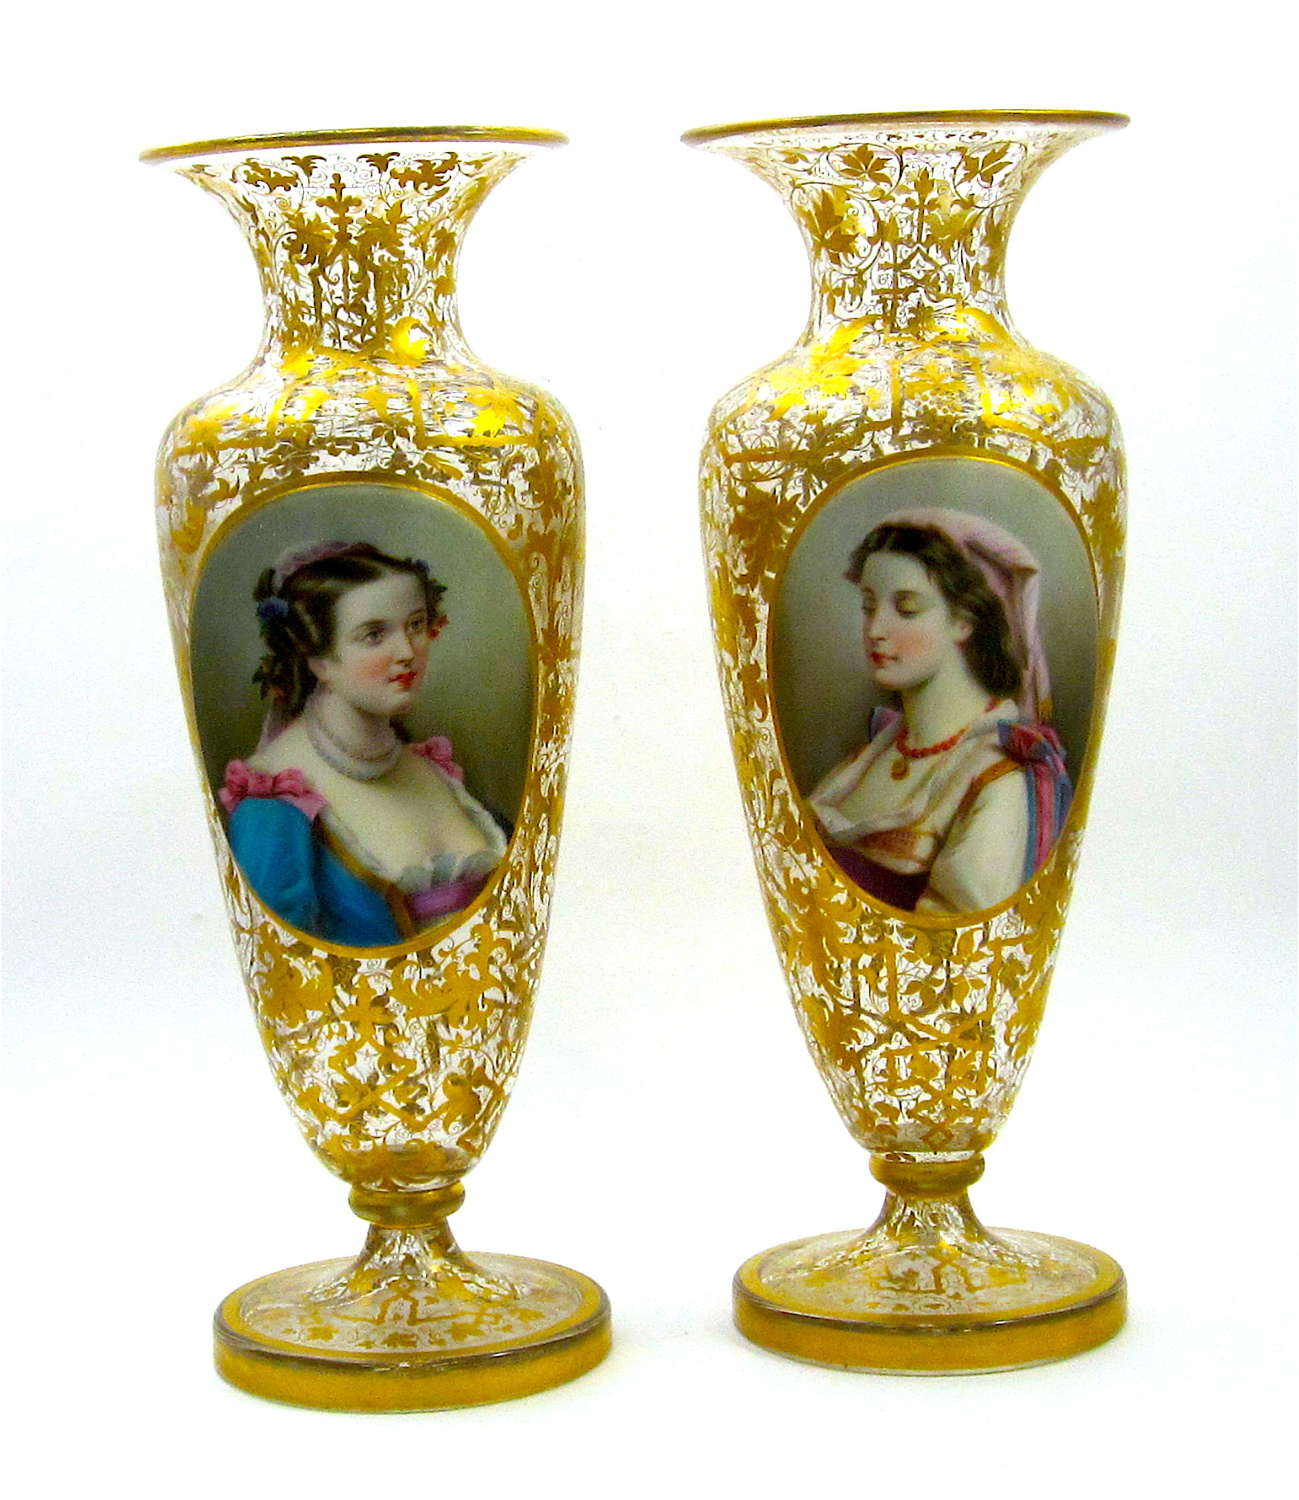 Pair of Antique Bohemian Overlay Glass Portrait Vases